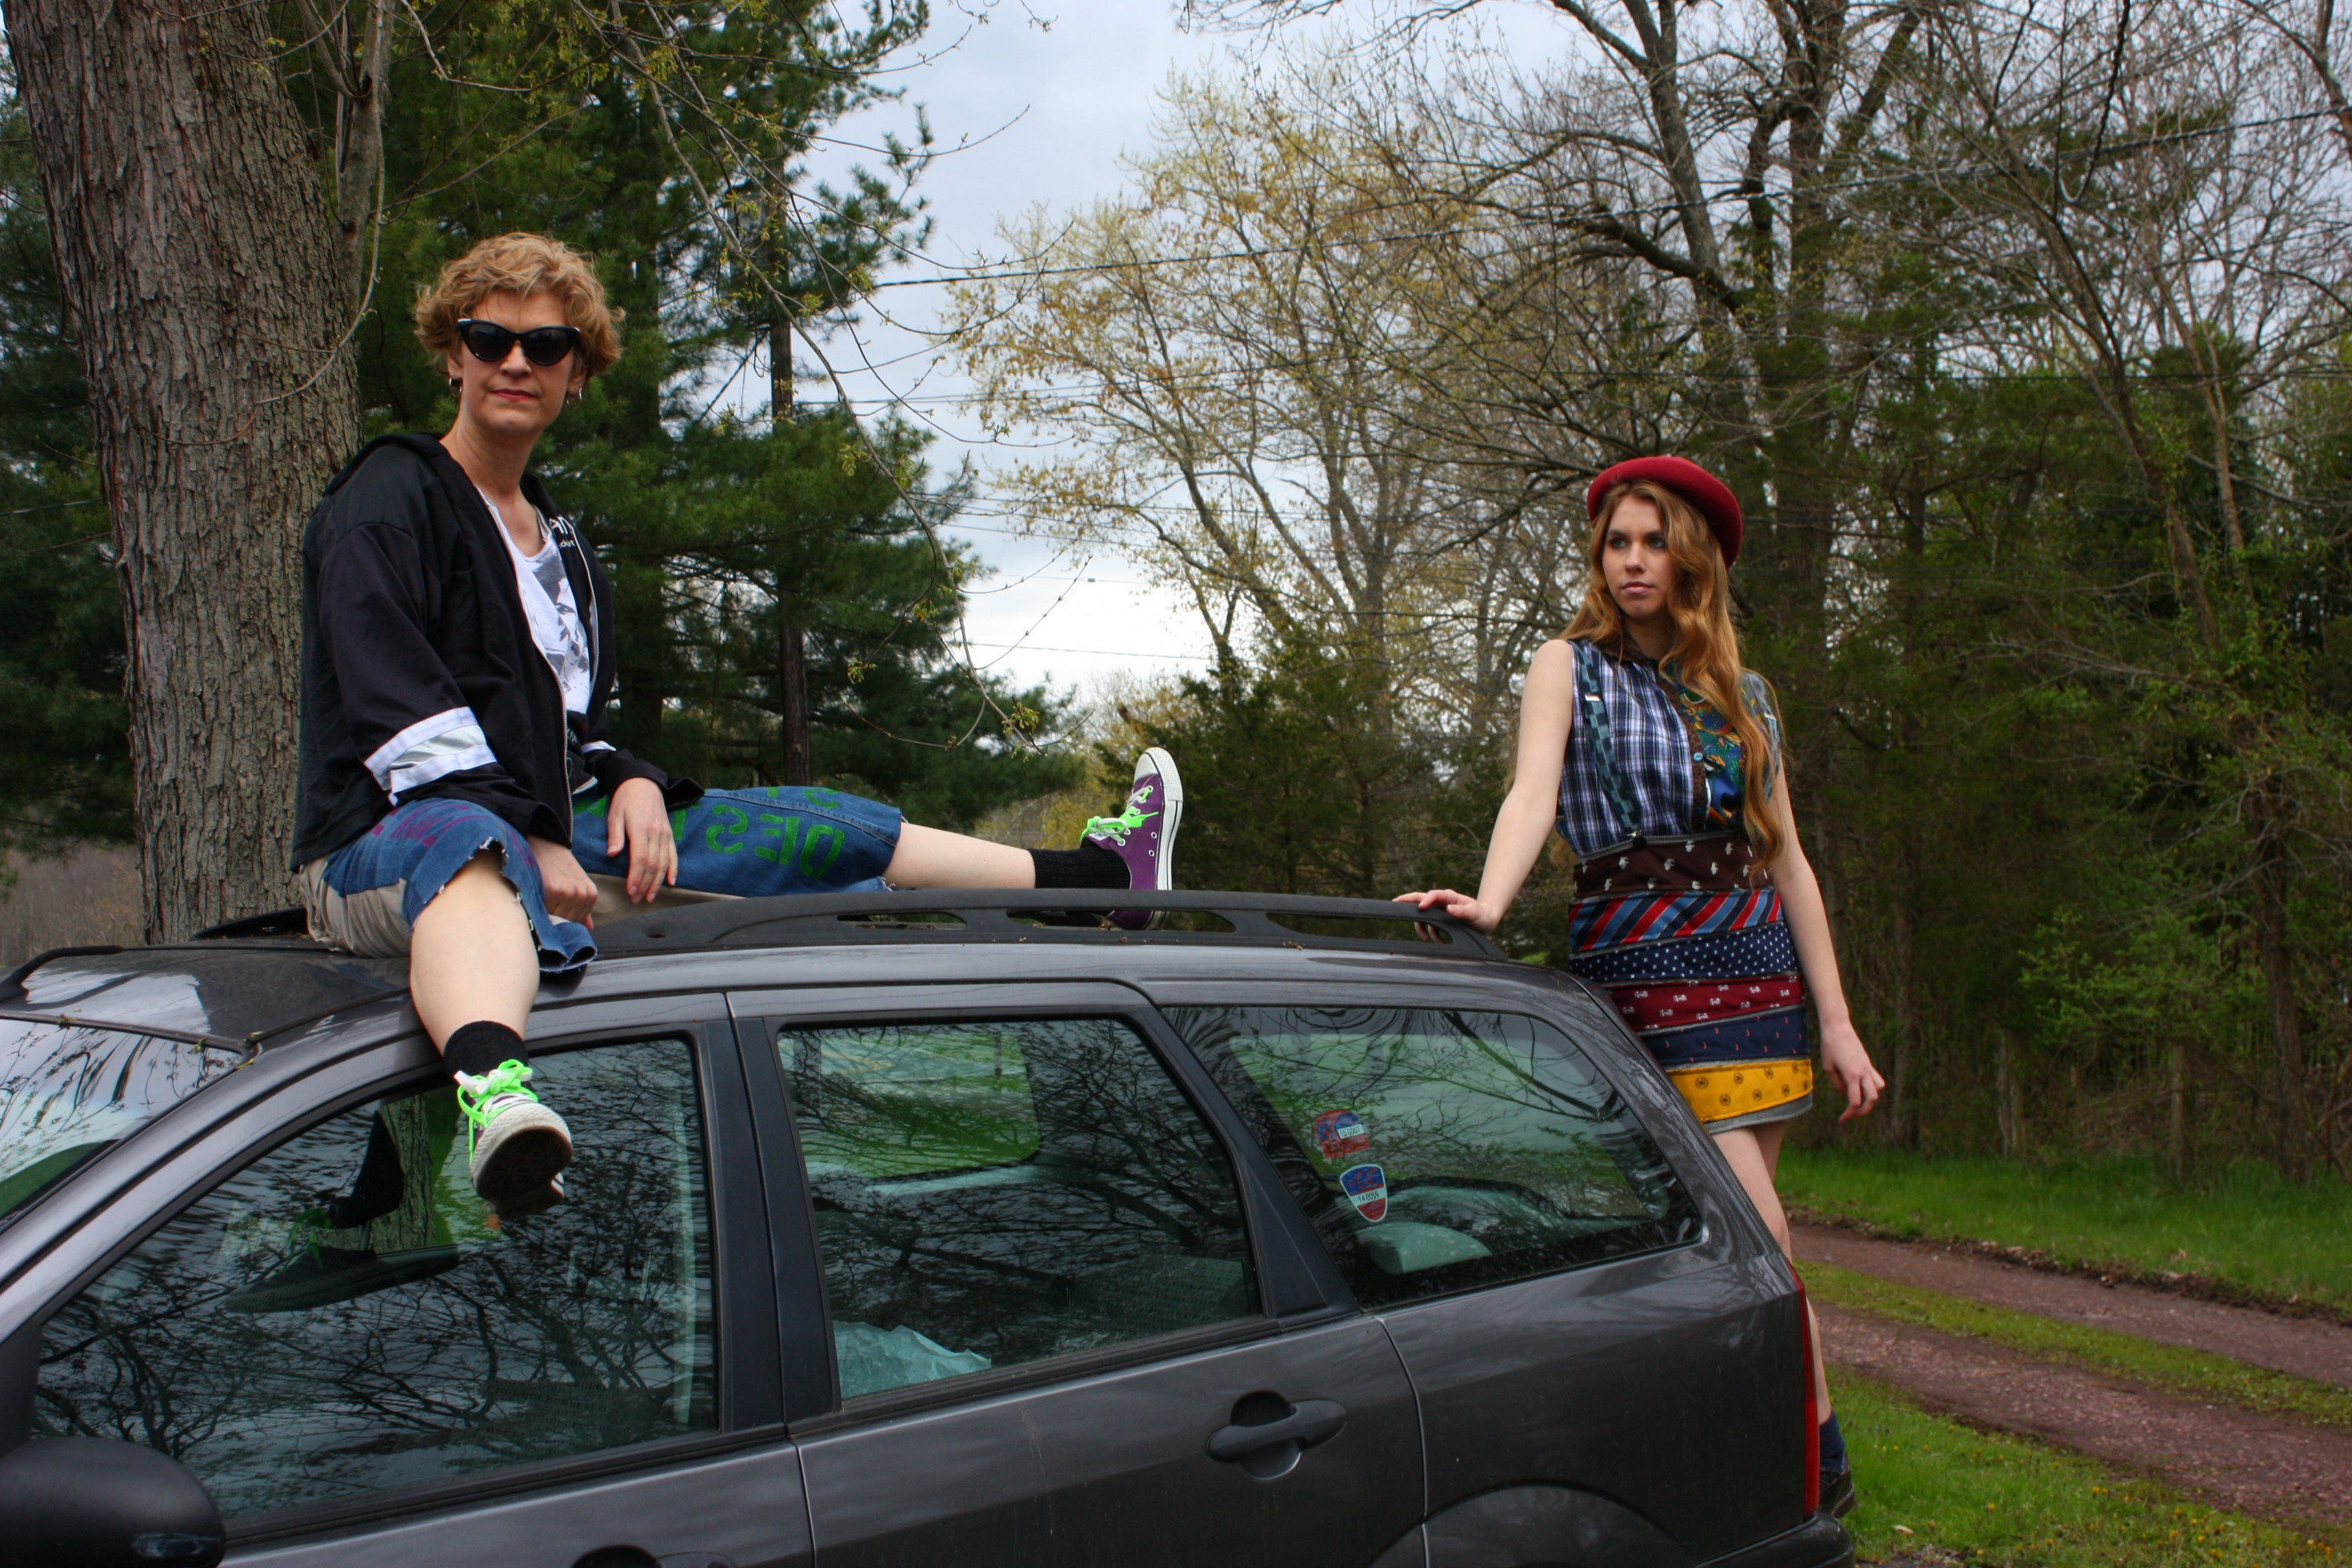 Skate Punk model and Ska Punk model are positioned together. The Skate Punk model is sitting on top of a worn car and the Ska Punk model is position to the back side of the car.